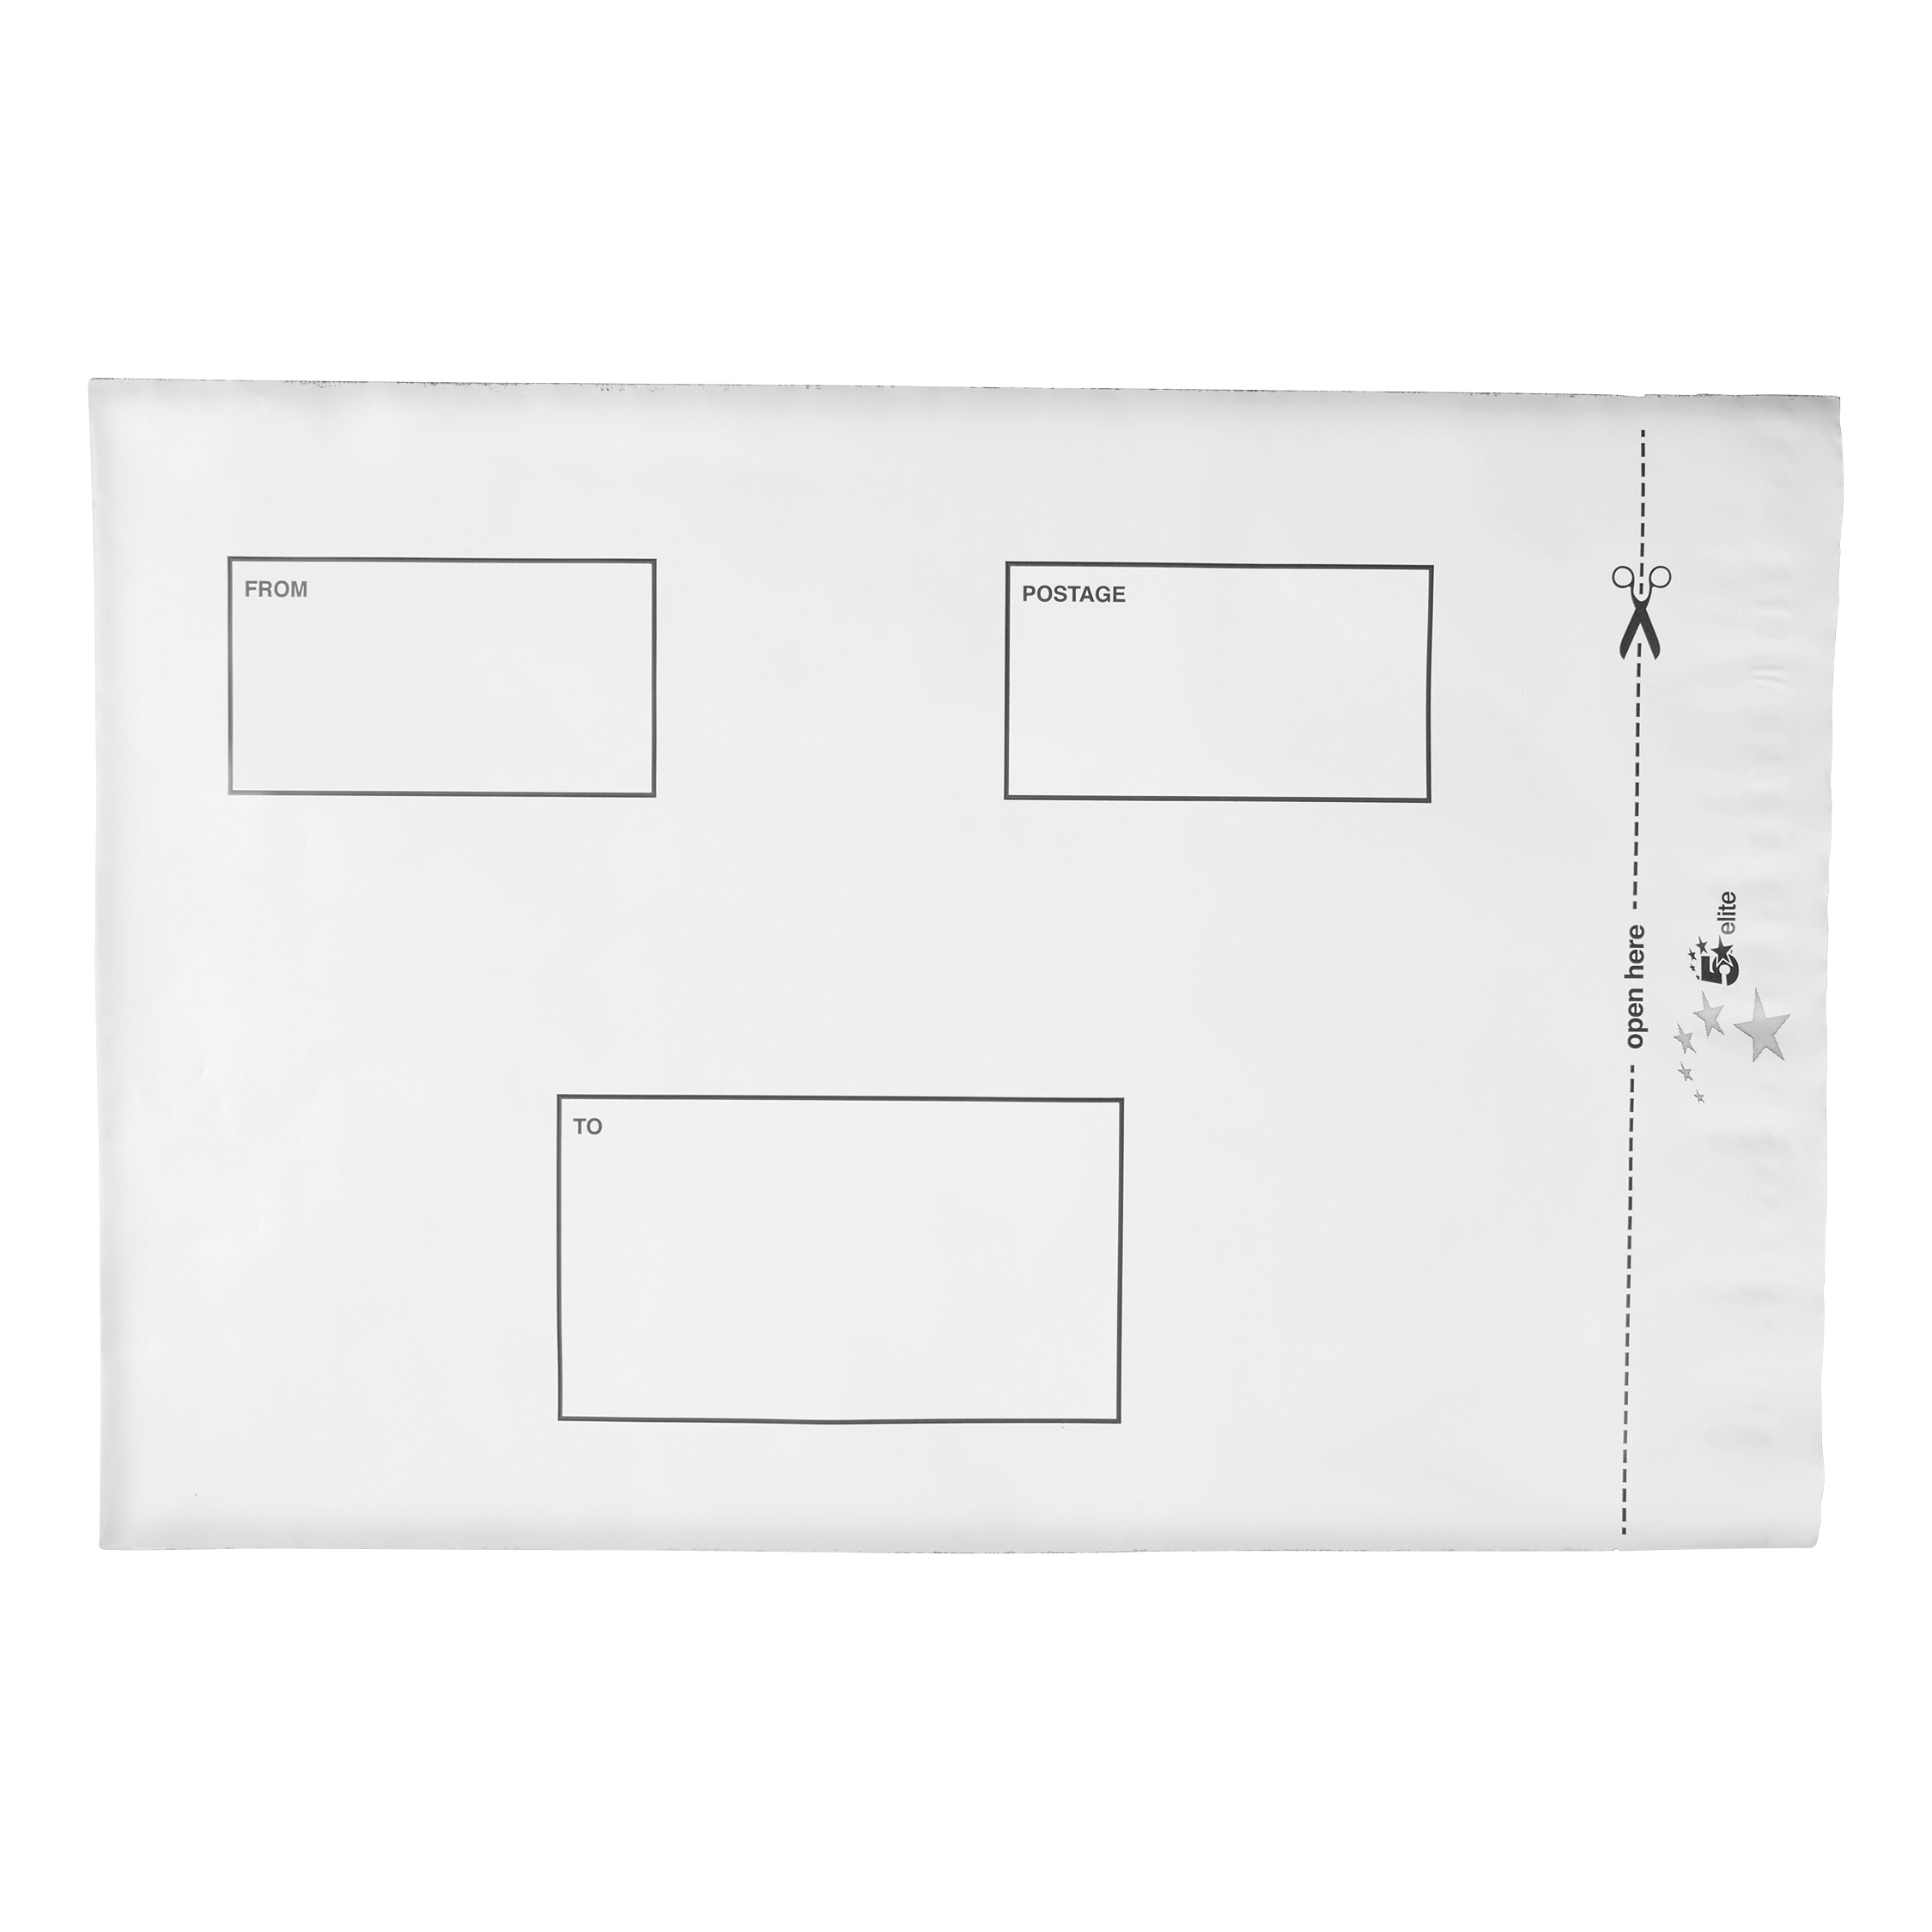 Polythene Envelopes 5 Star Elite Envelopes ExtraStrong Waterproof Polythene Peel & Seal Opaque 250x320mm&50mm Flap [Pack 100]